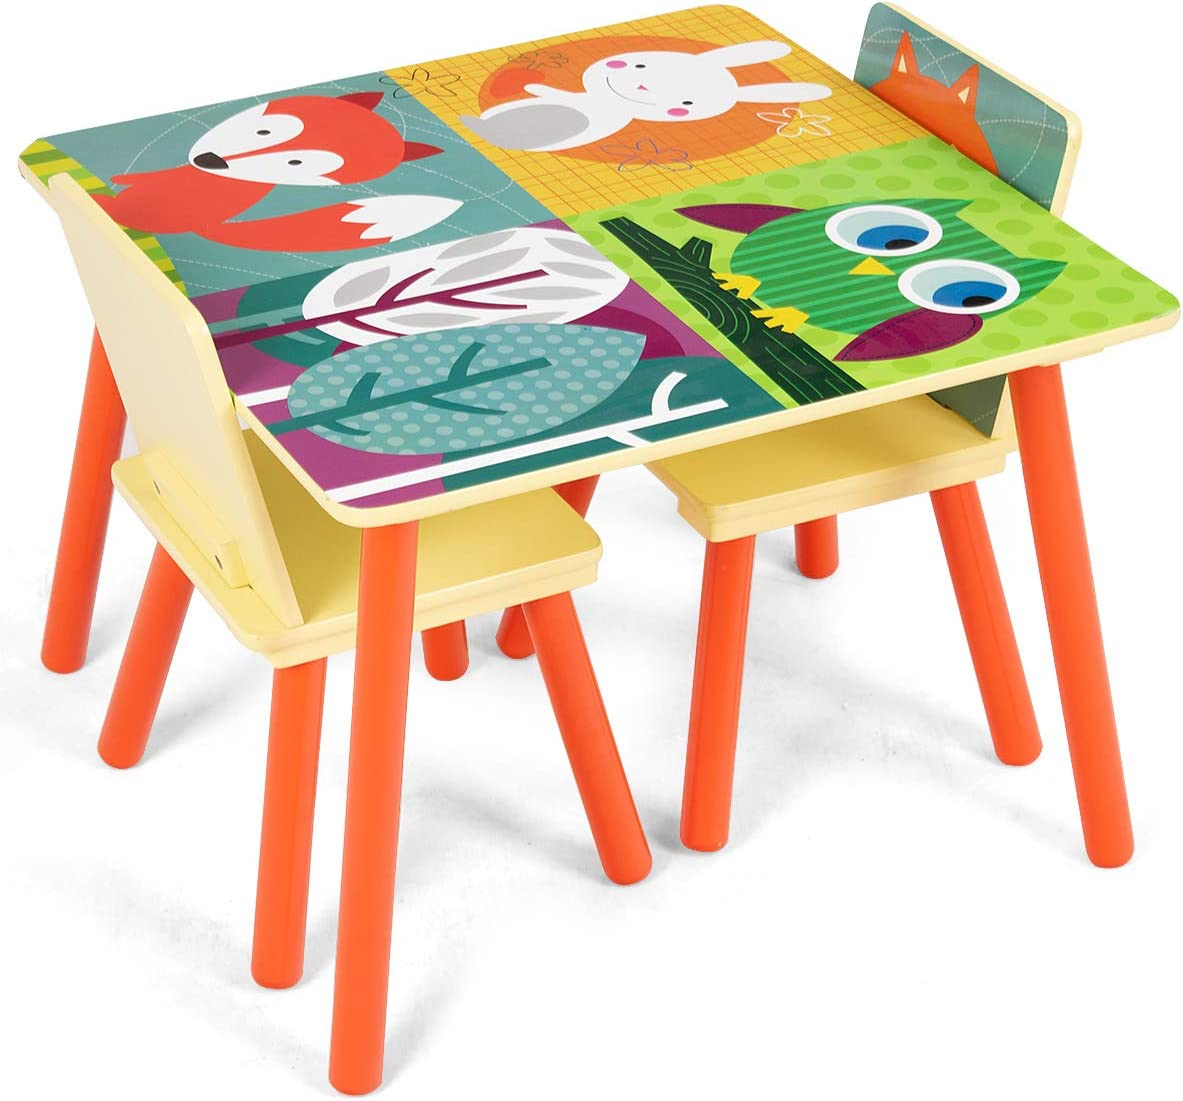 COSTWAY Kids Table Chair Set with Table + 2PCS Chairs, Forest Animal Theme Cartoon Pattern, Security Rounded Corners, Eco friendly Wood, Multifunction